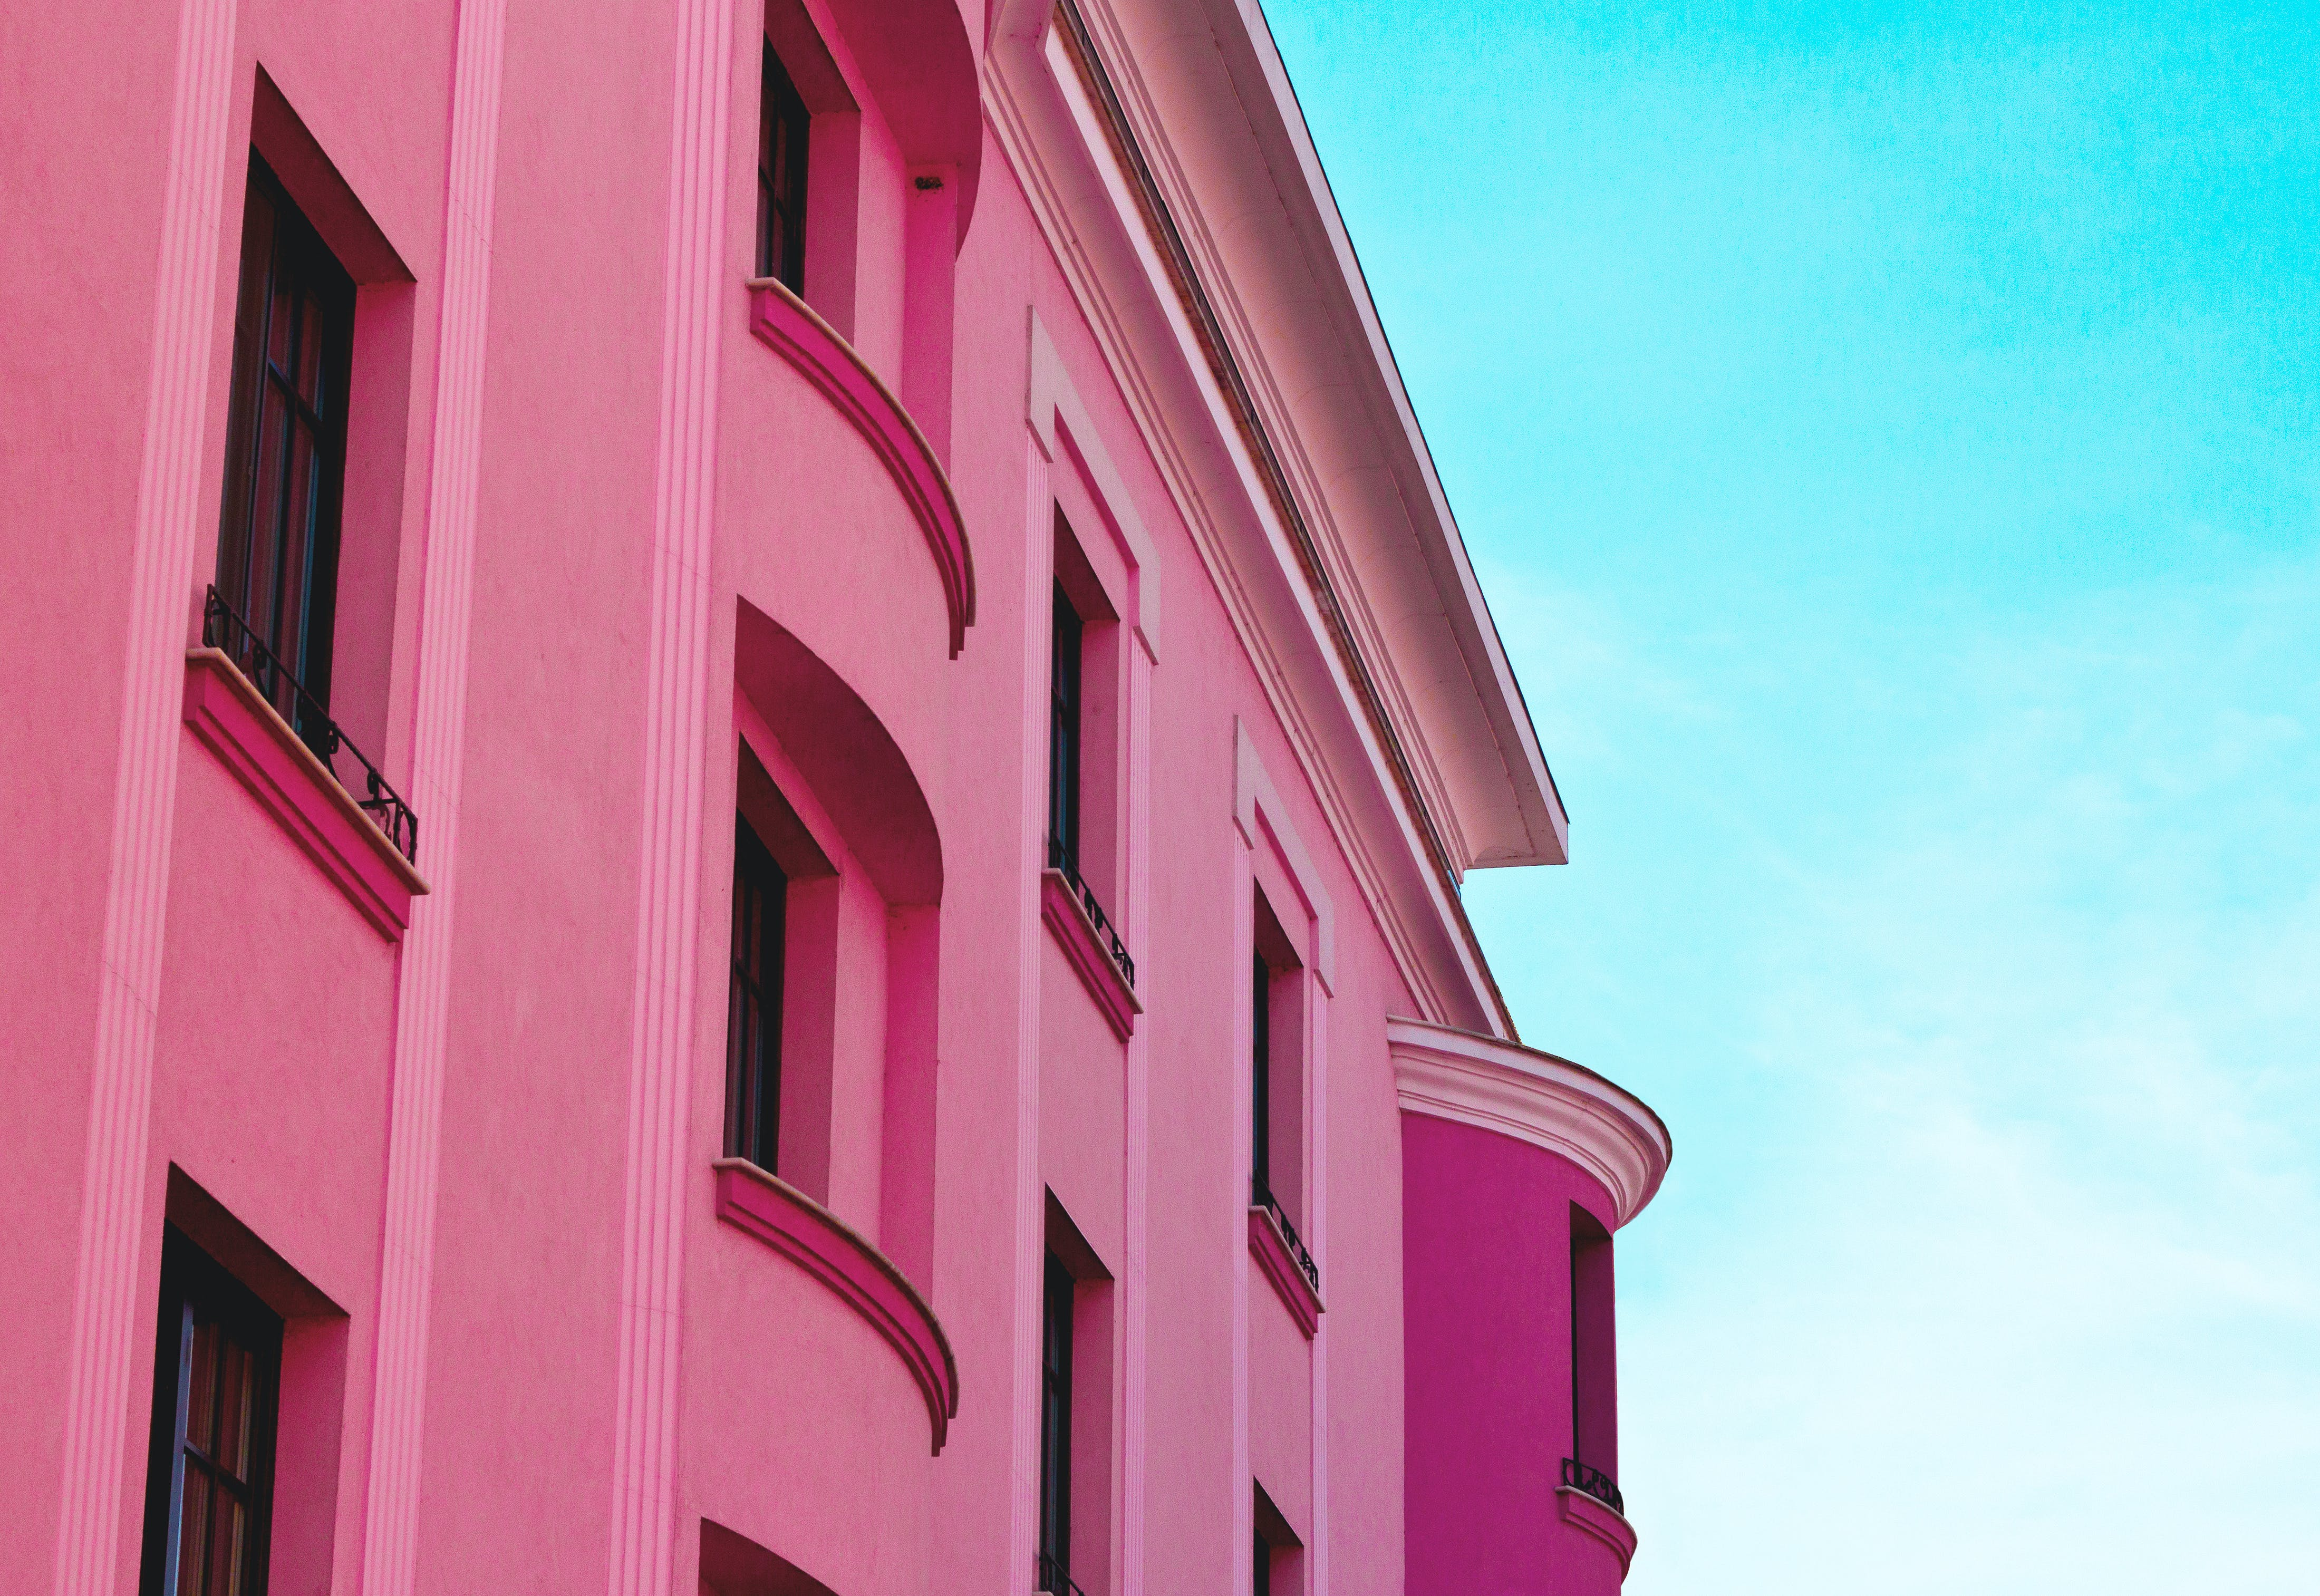 Pink Concrete Building